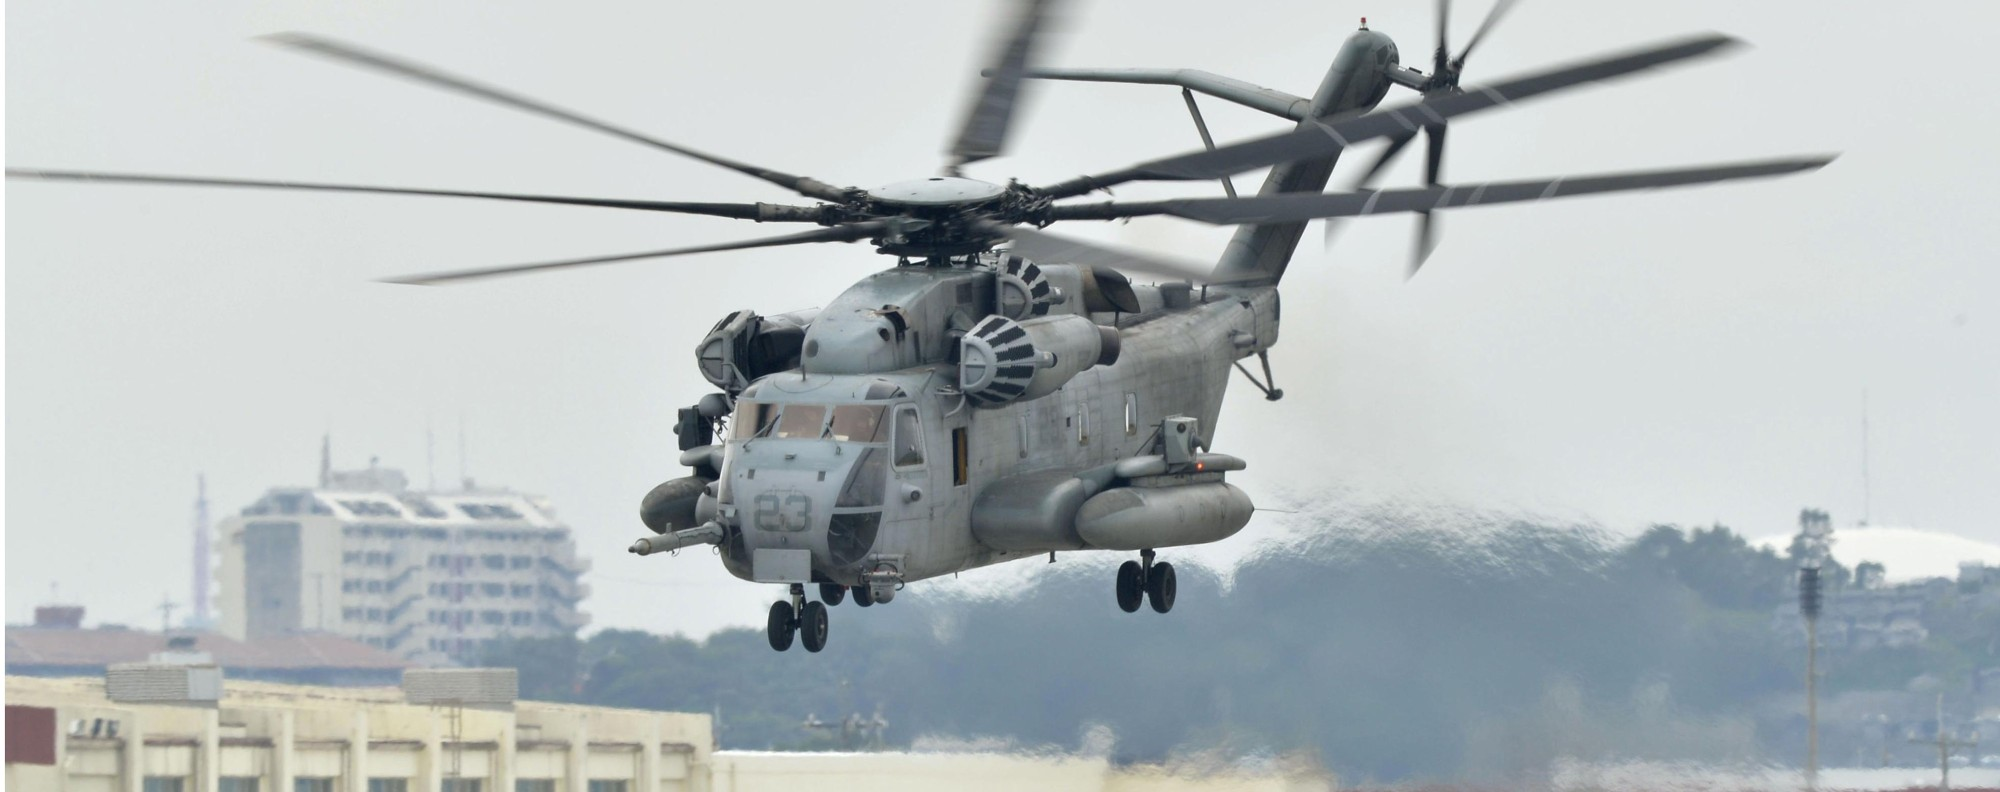 A CH-53E transport helicopter flies in Ginowan, Okinawa Prefecture. Photo: Kyodo